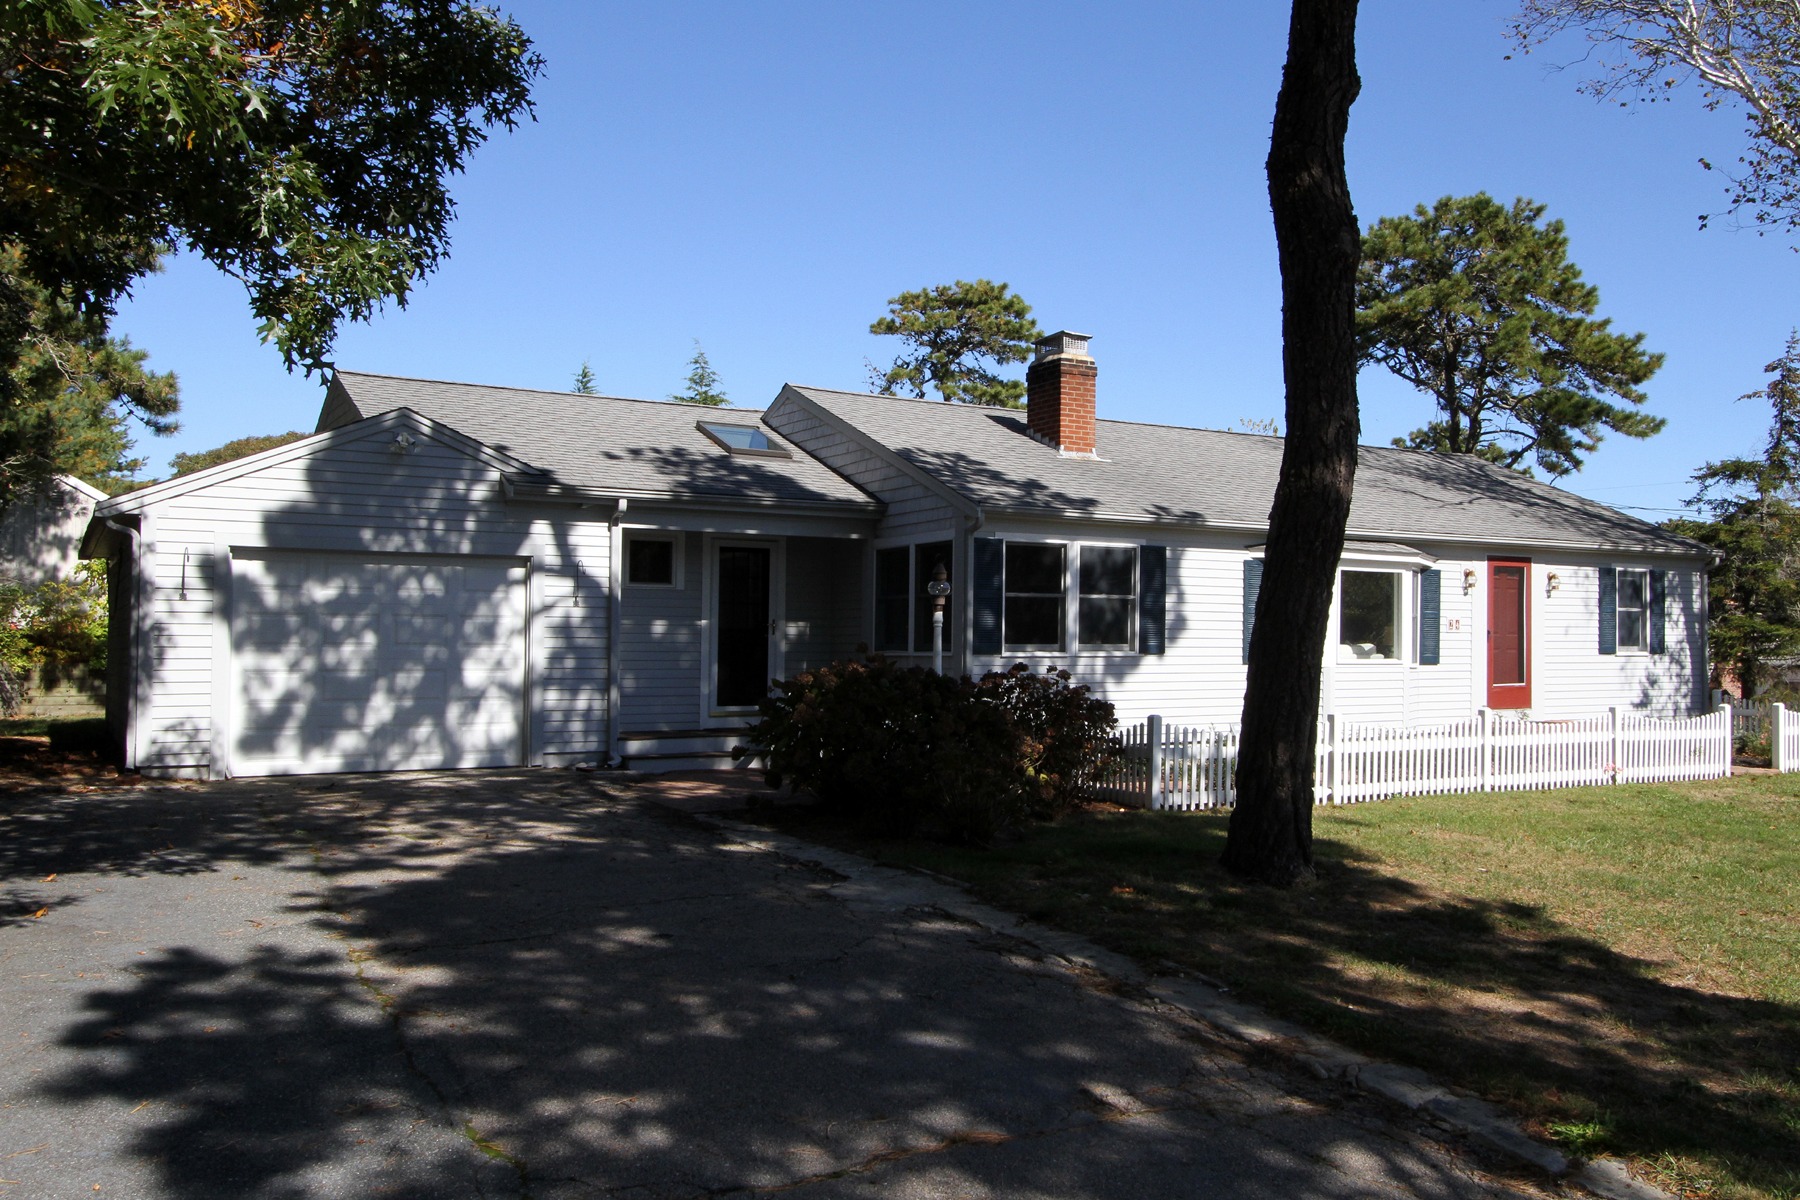 Single Family Home for Sale at GREAT RENTAL POTENTIAL 24 Hollow Lane Harwich, Massachusetts 02645 United States